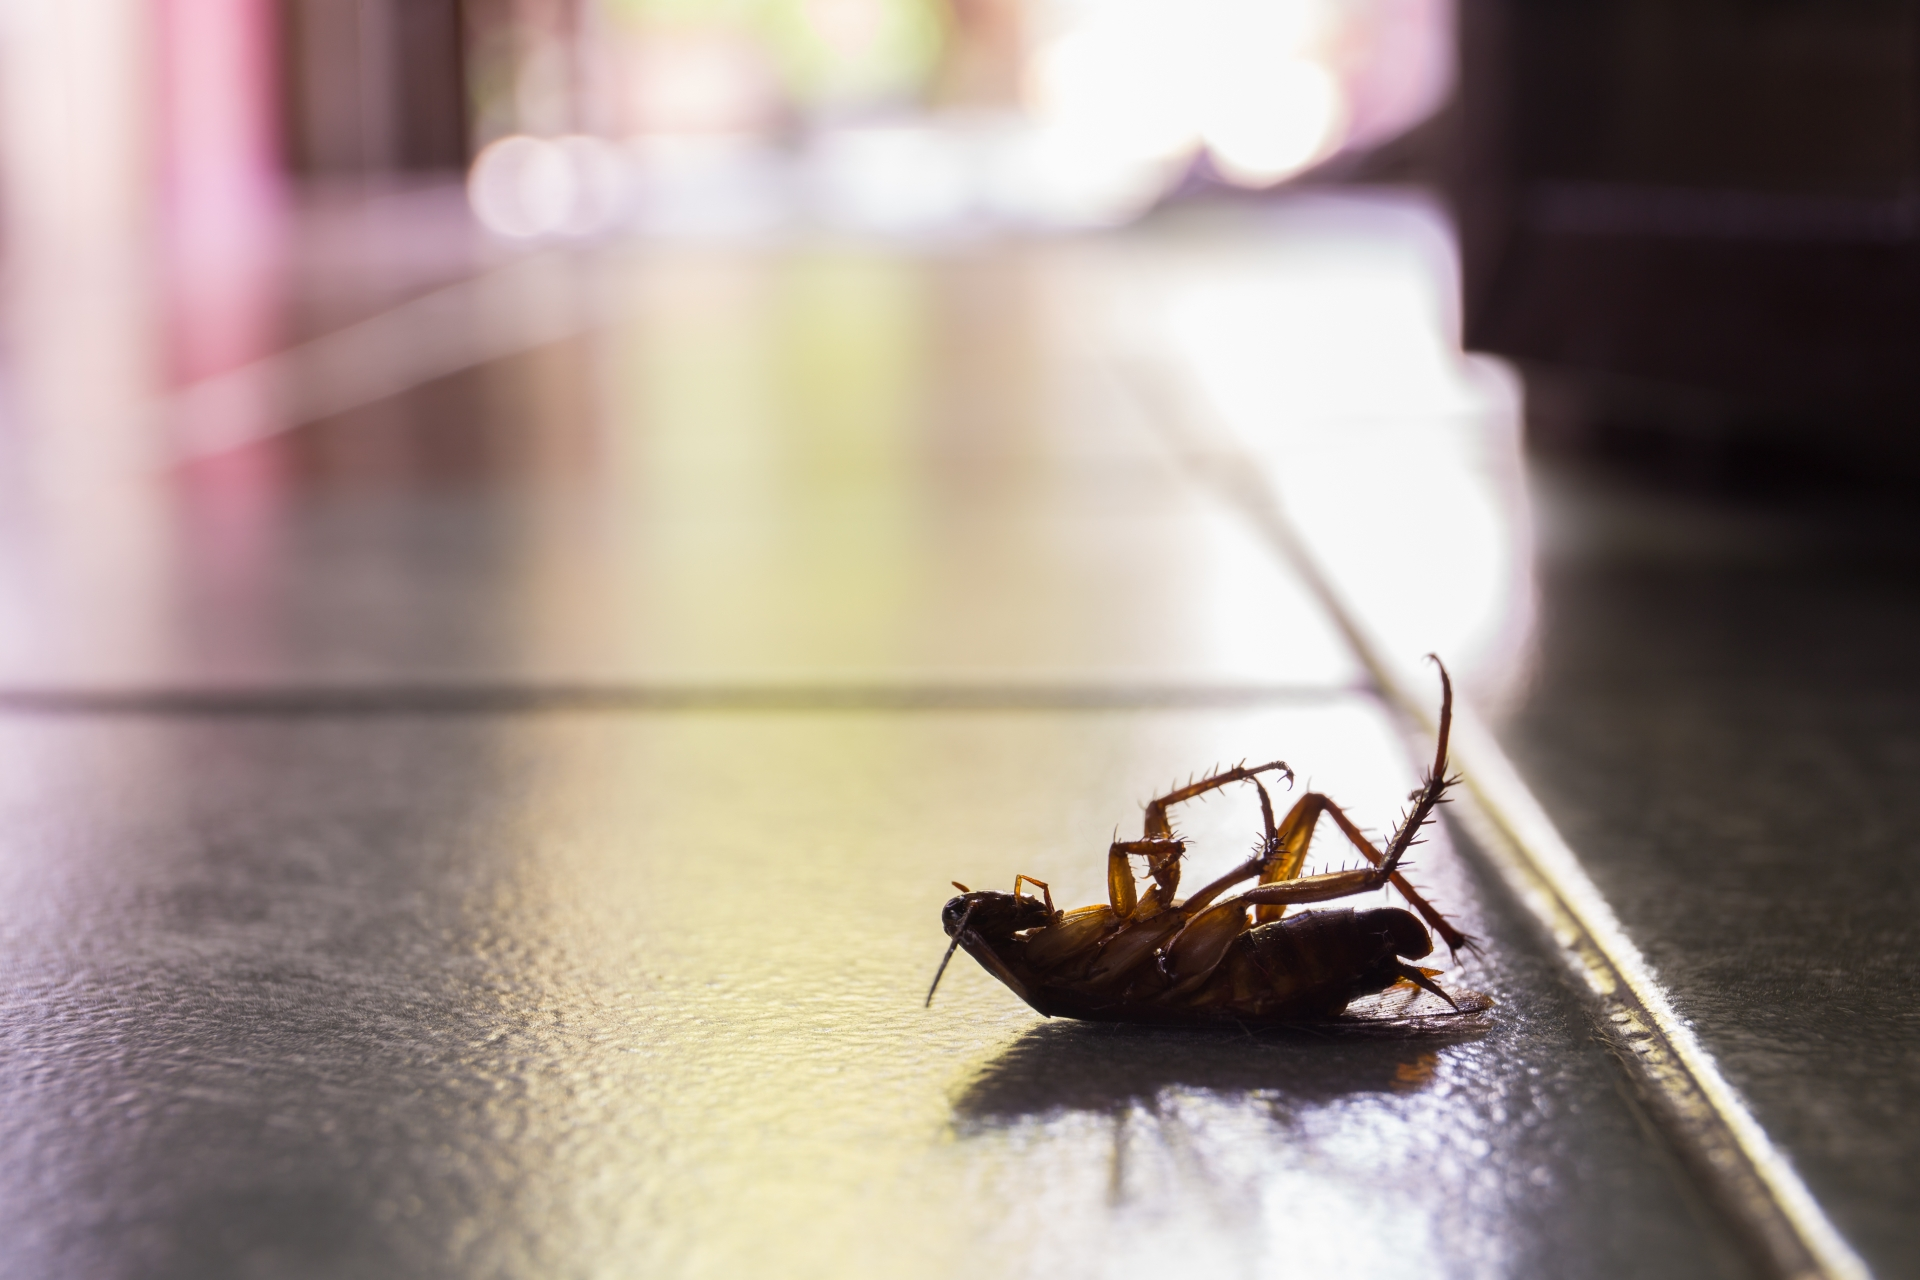 Cockroach Control, Pest Control in Manor Park, E12. Call Now 020 8166 9746